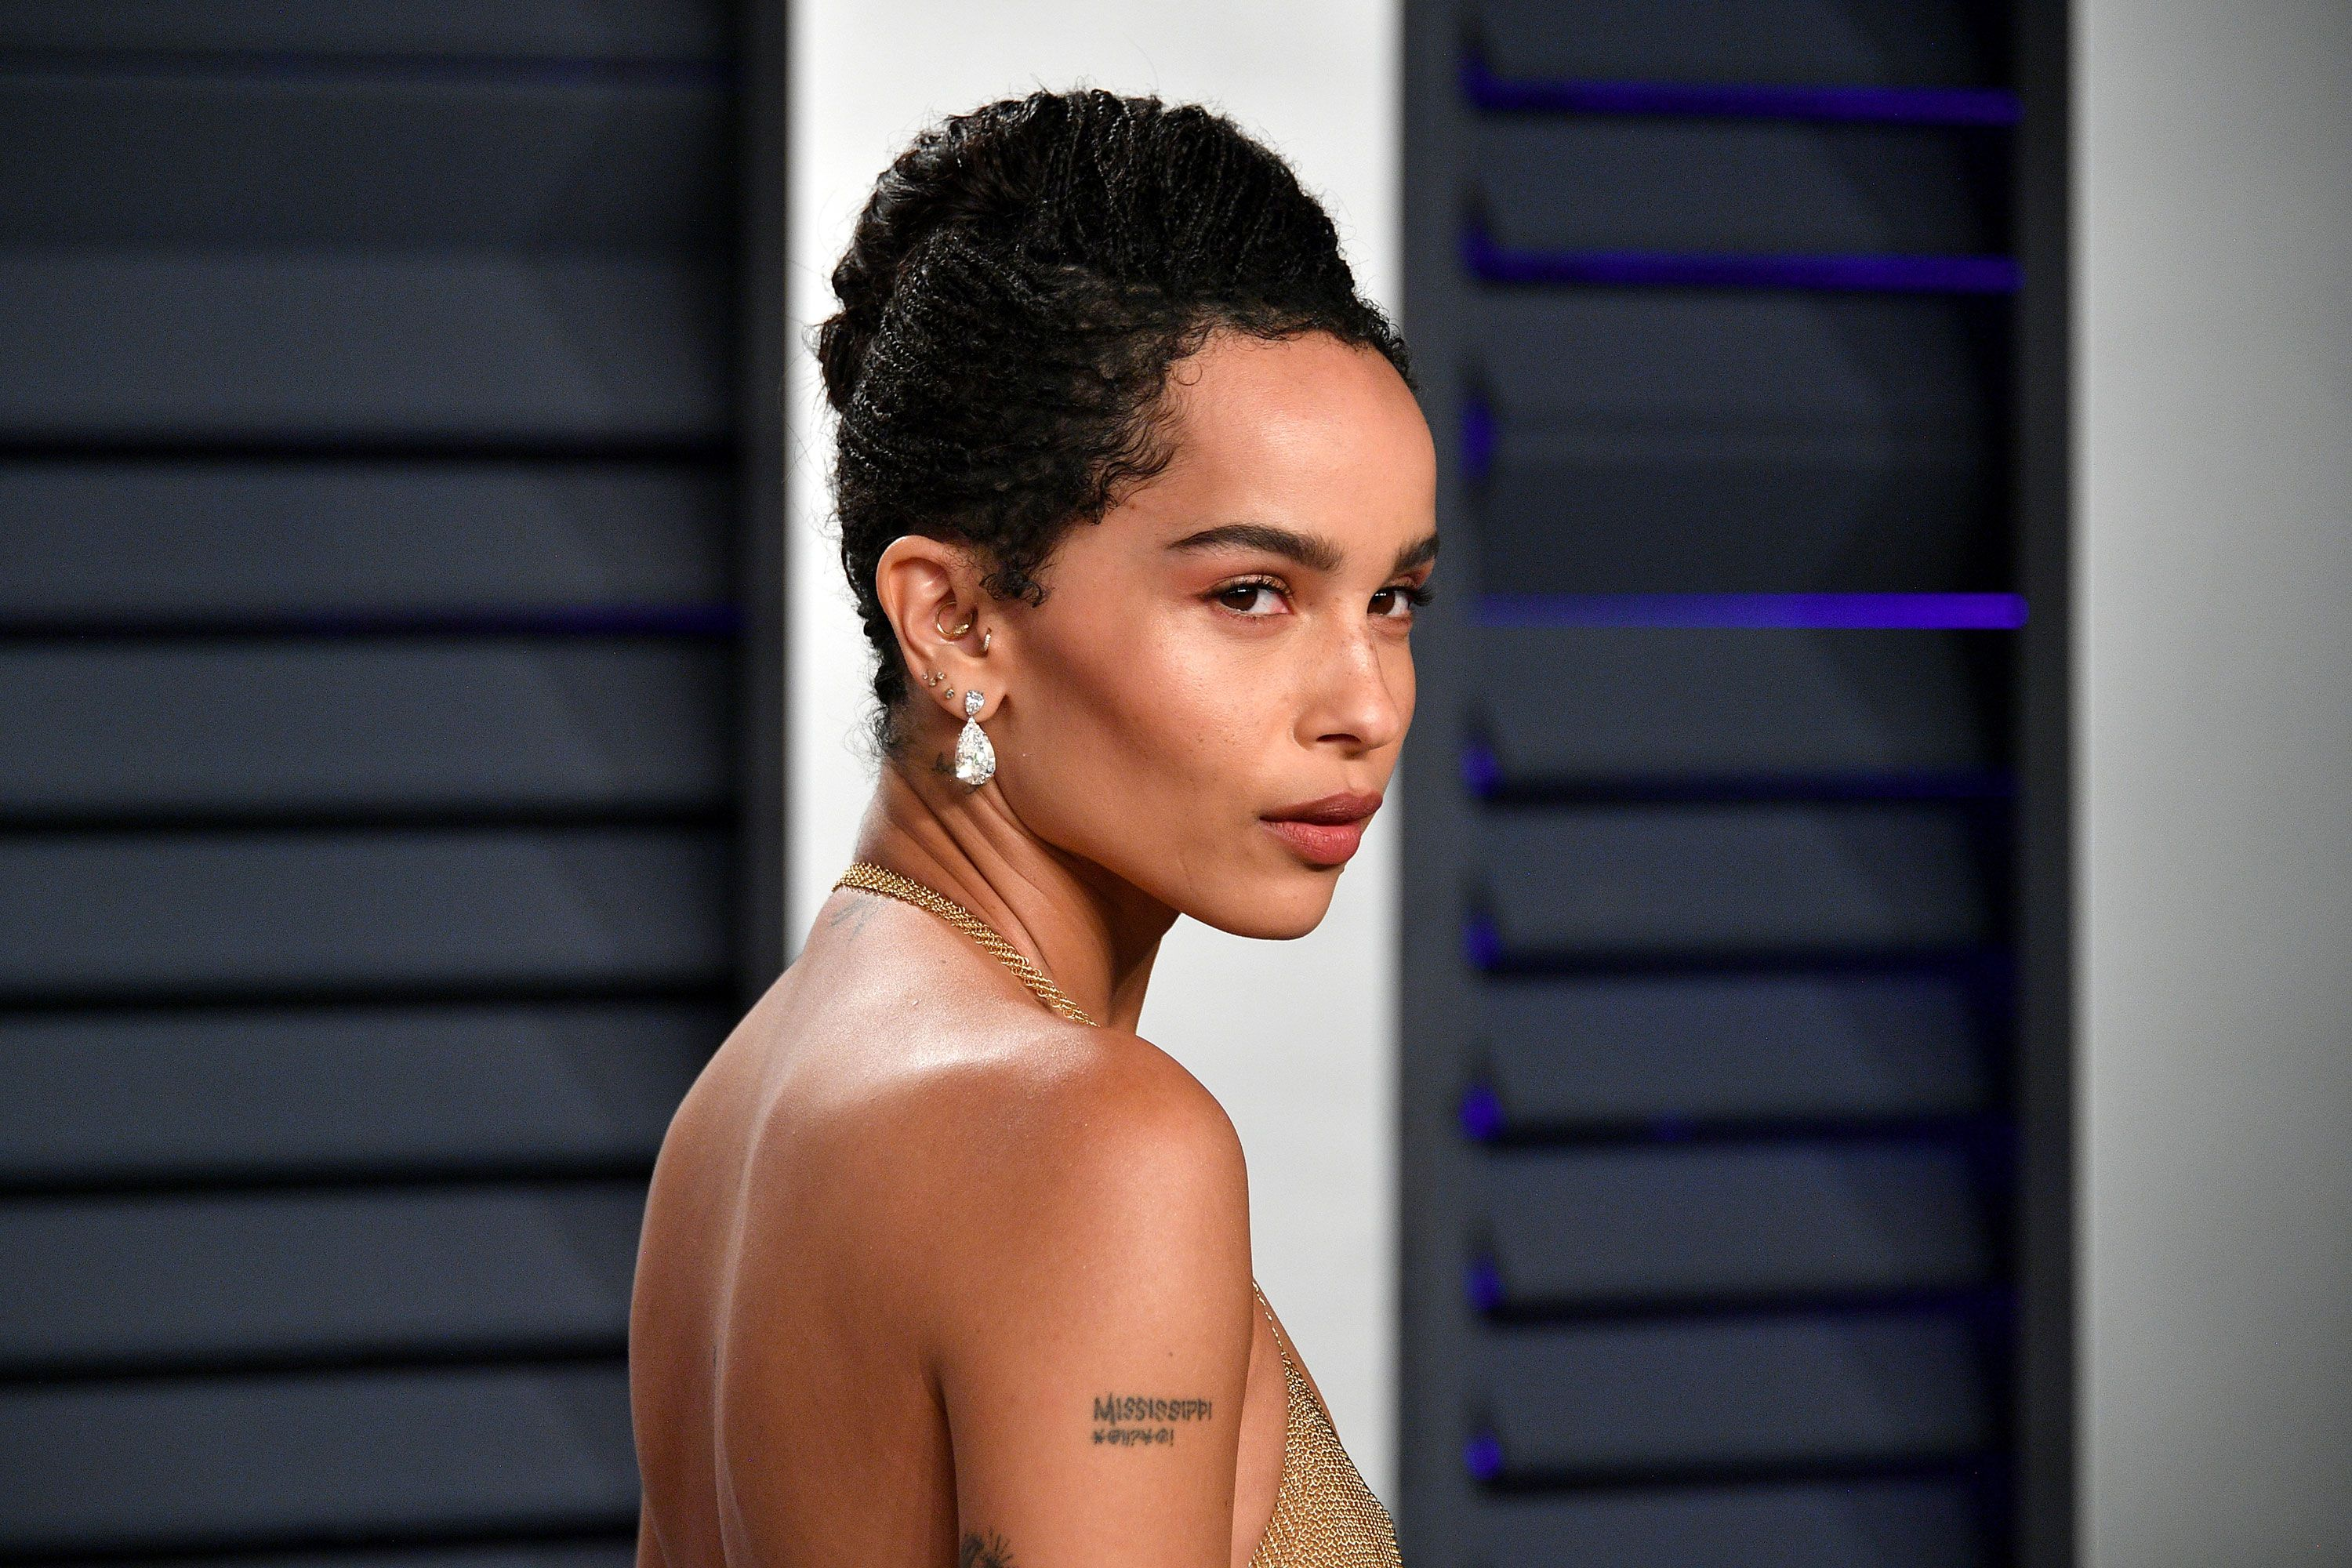 Foto Zoe Kravitz naked (78 foto and video), Pussy, Leaked, Boobs, swimsuit 2019